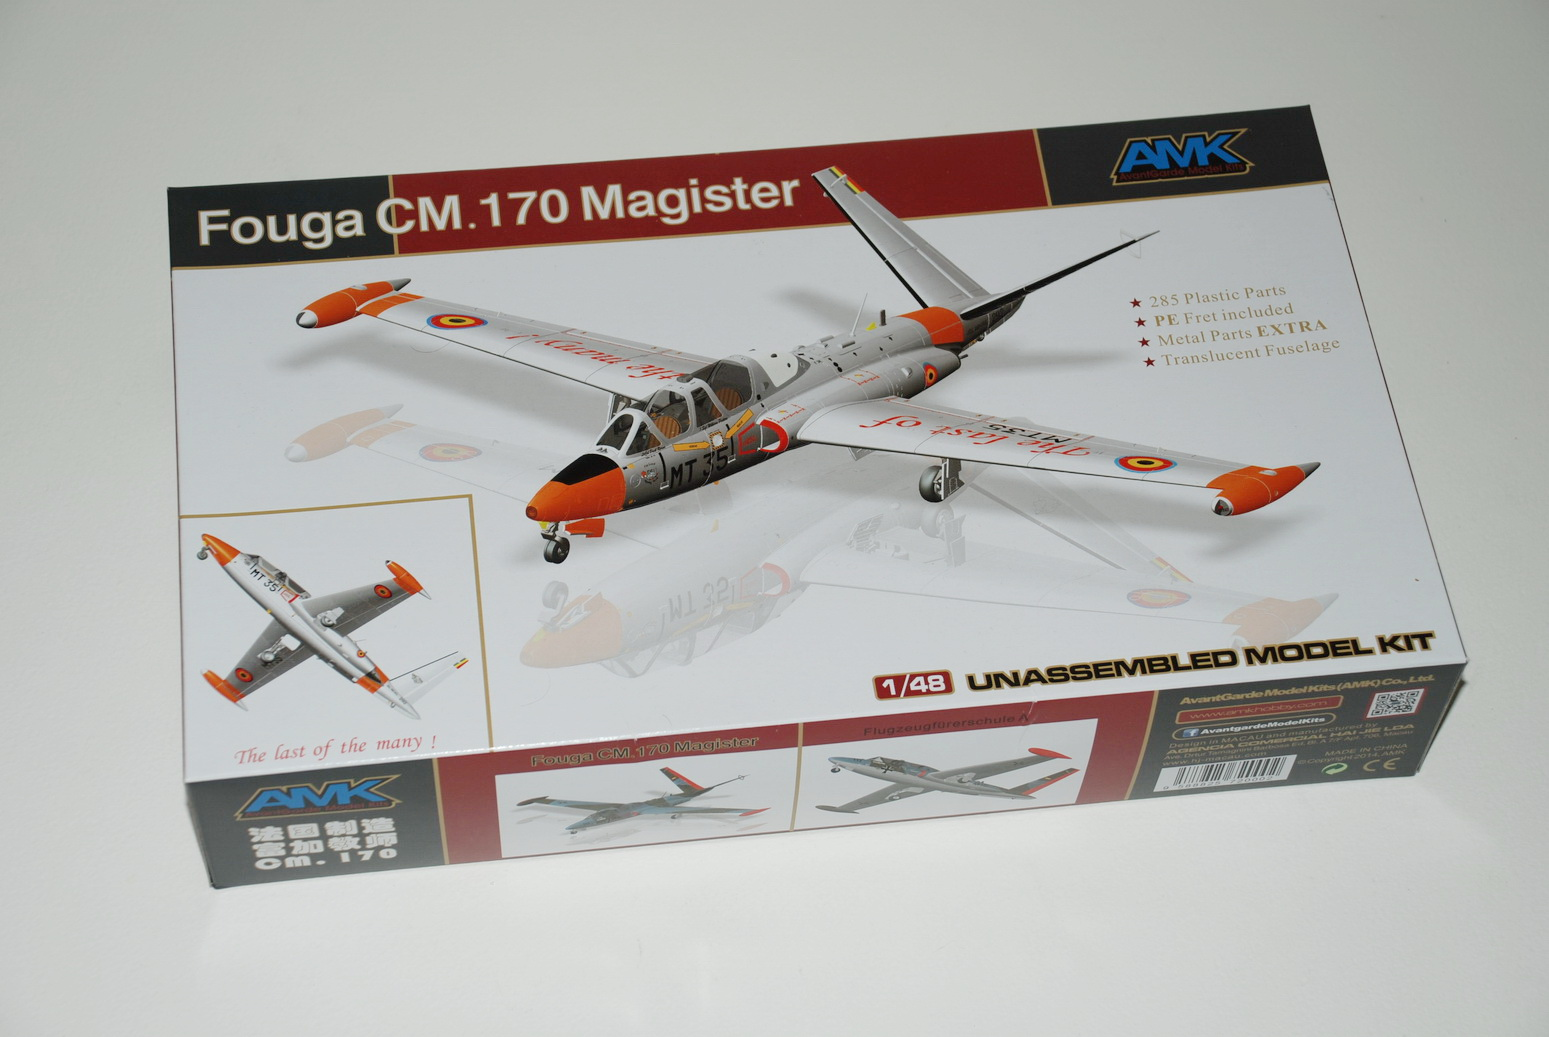 Fouga CM. 170 Magister AMK review